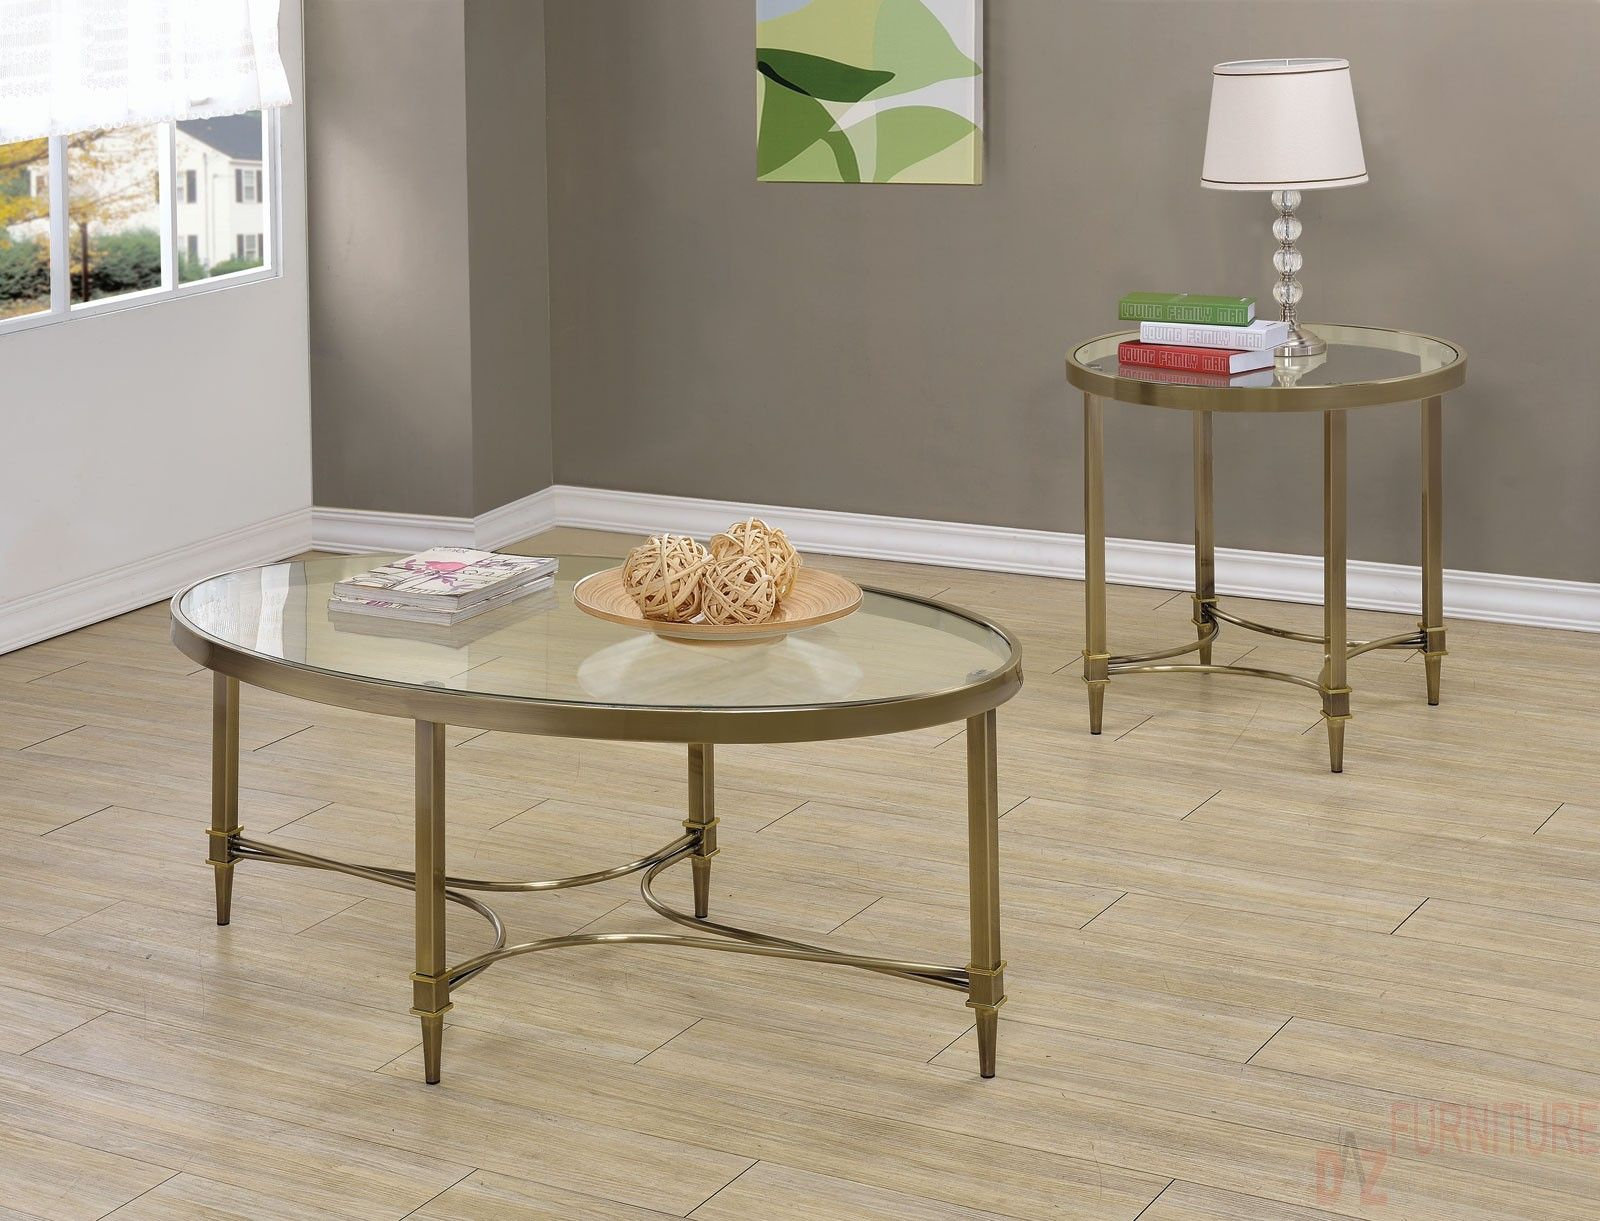 34+ Tufted coffee table with glass top inspirations